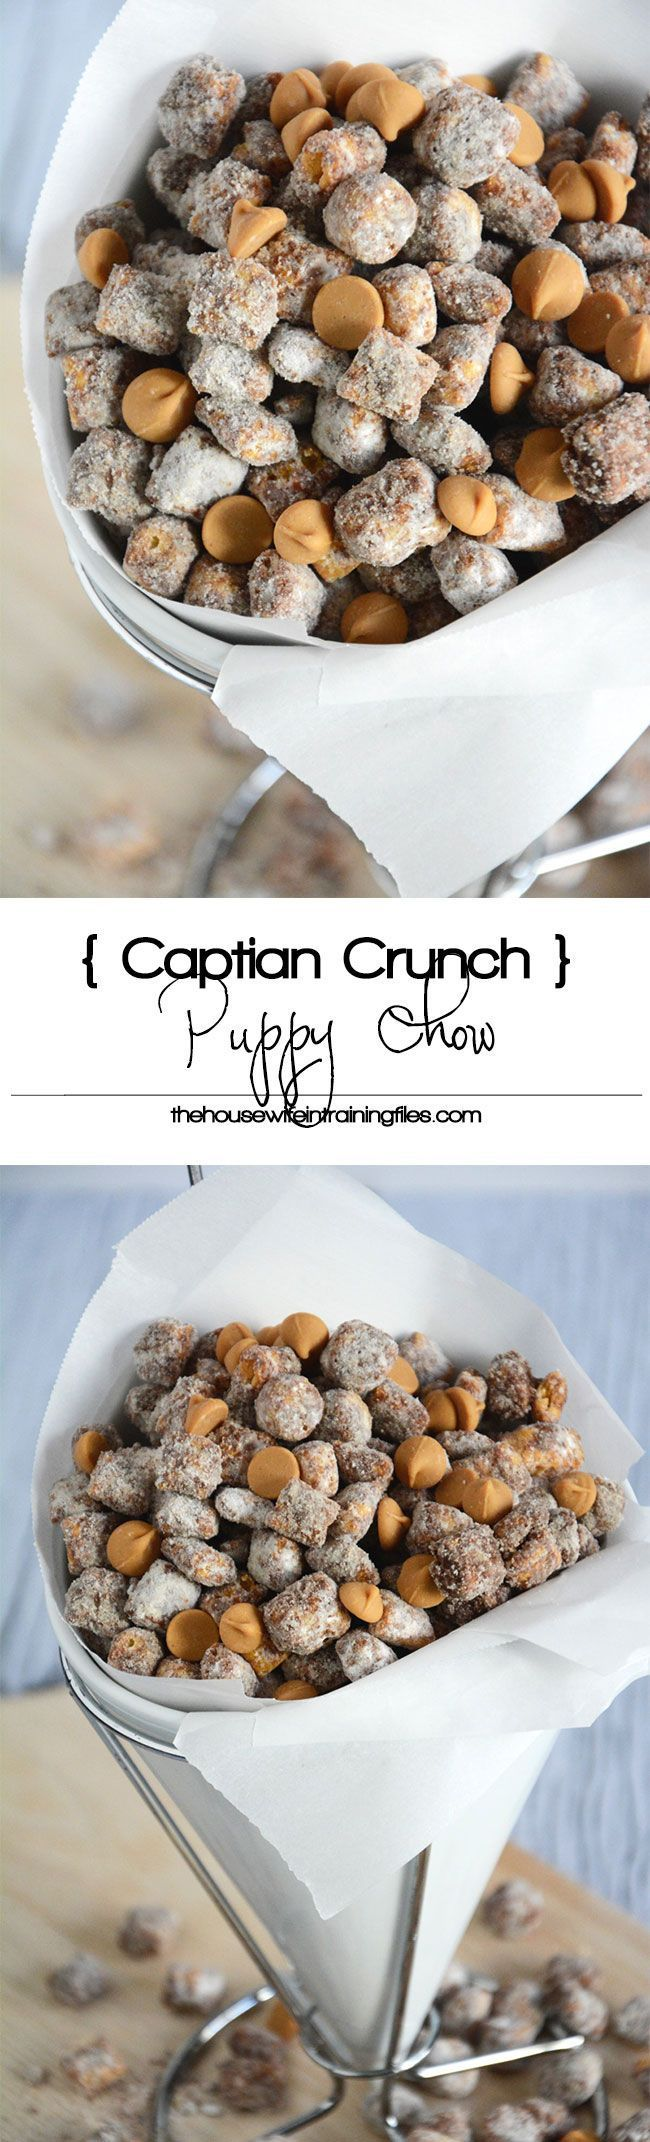 Captain Crunch Peanut Butter Puppy Chow #chickenbreastrecipeseasy